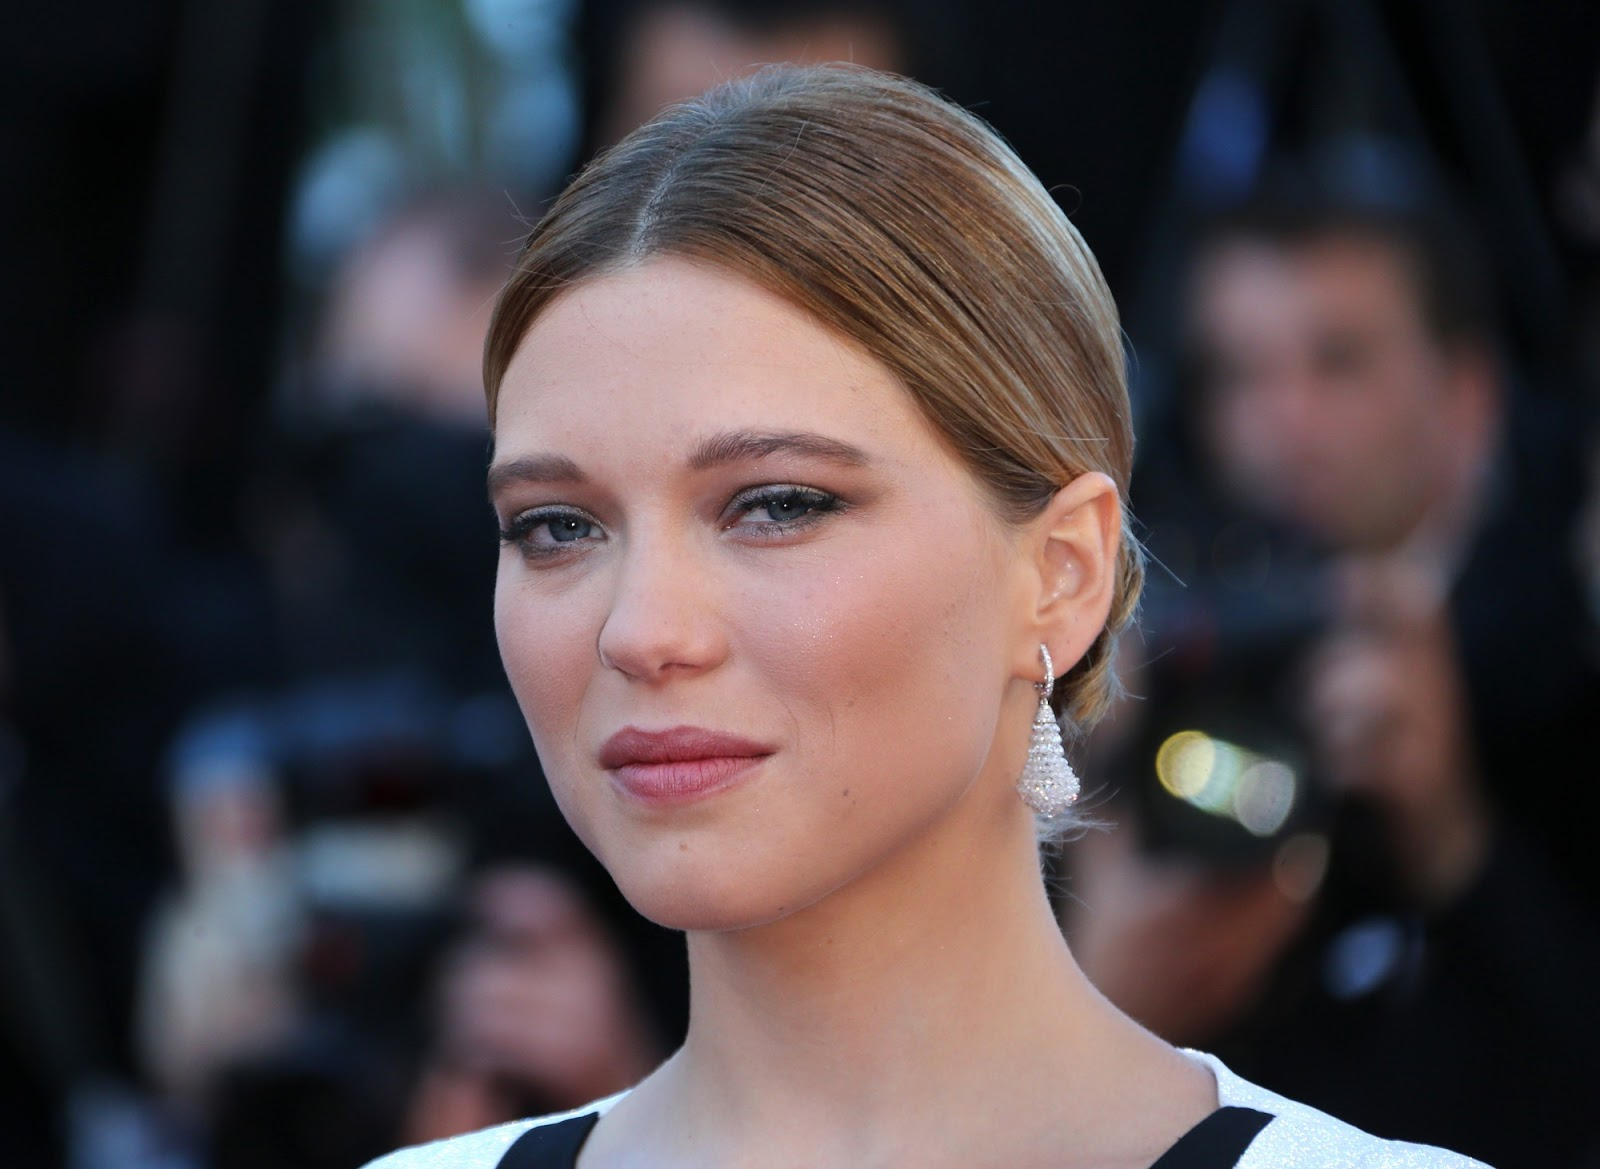 lea seydoux hd wallpaper free download http